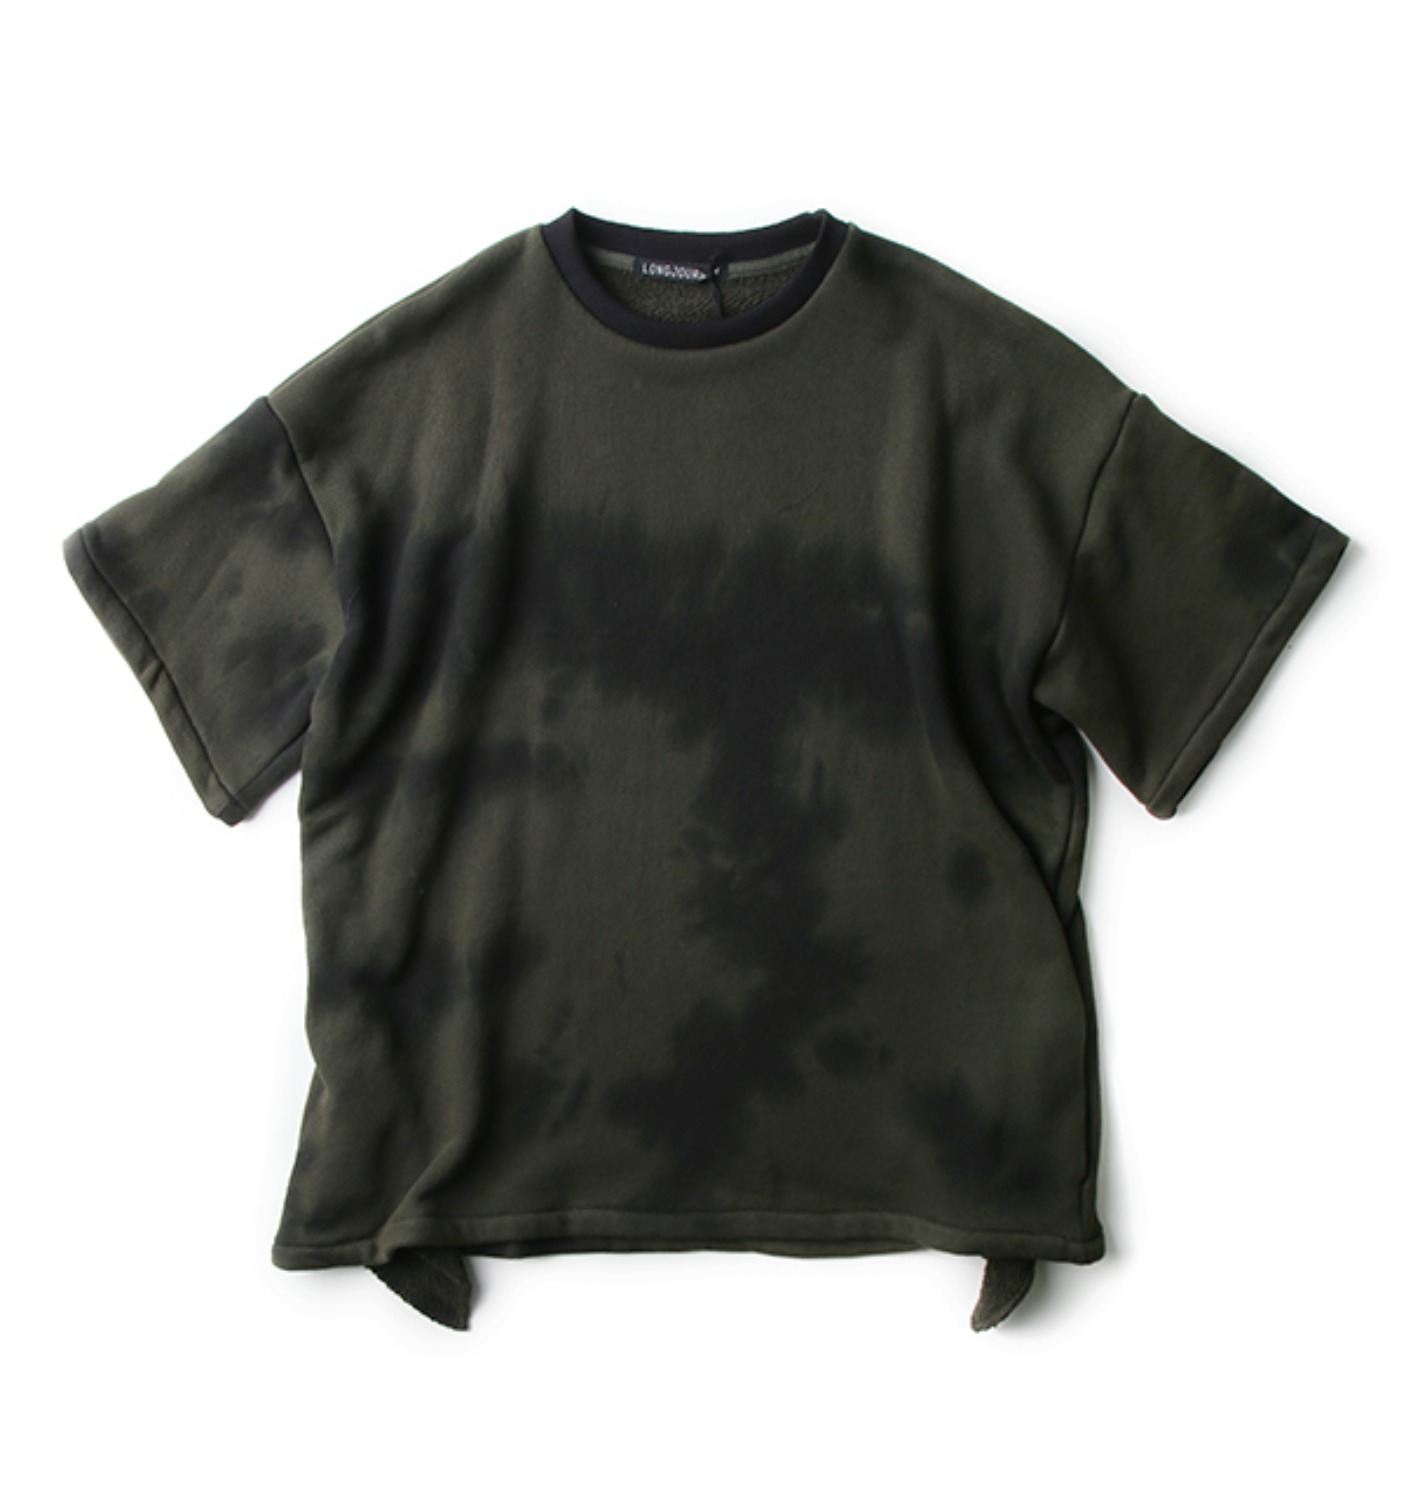 BAGGY T SHIRT DARK GREEN NIGHT PRINT(LJFW1718)